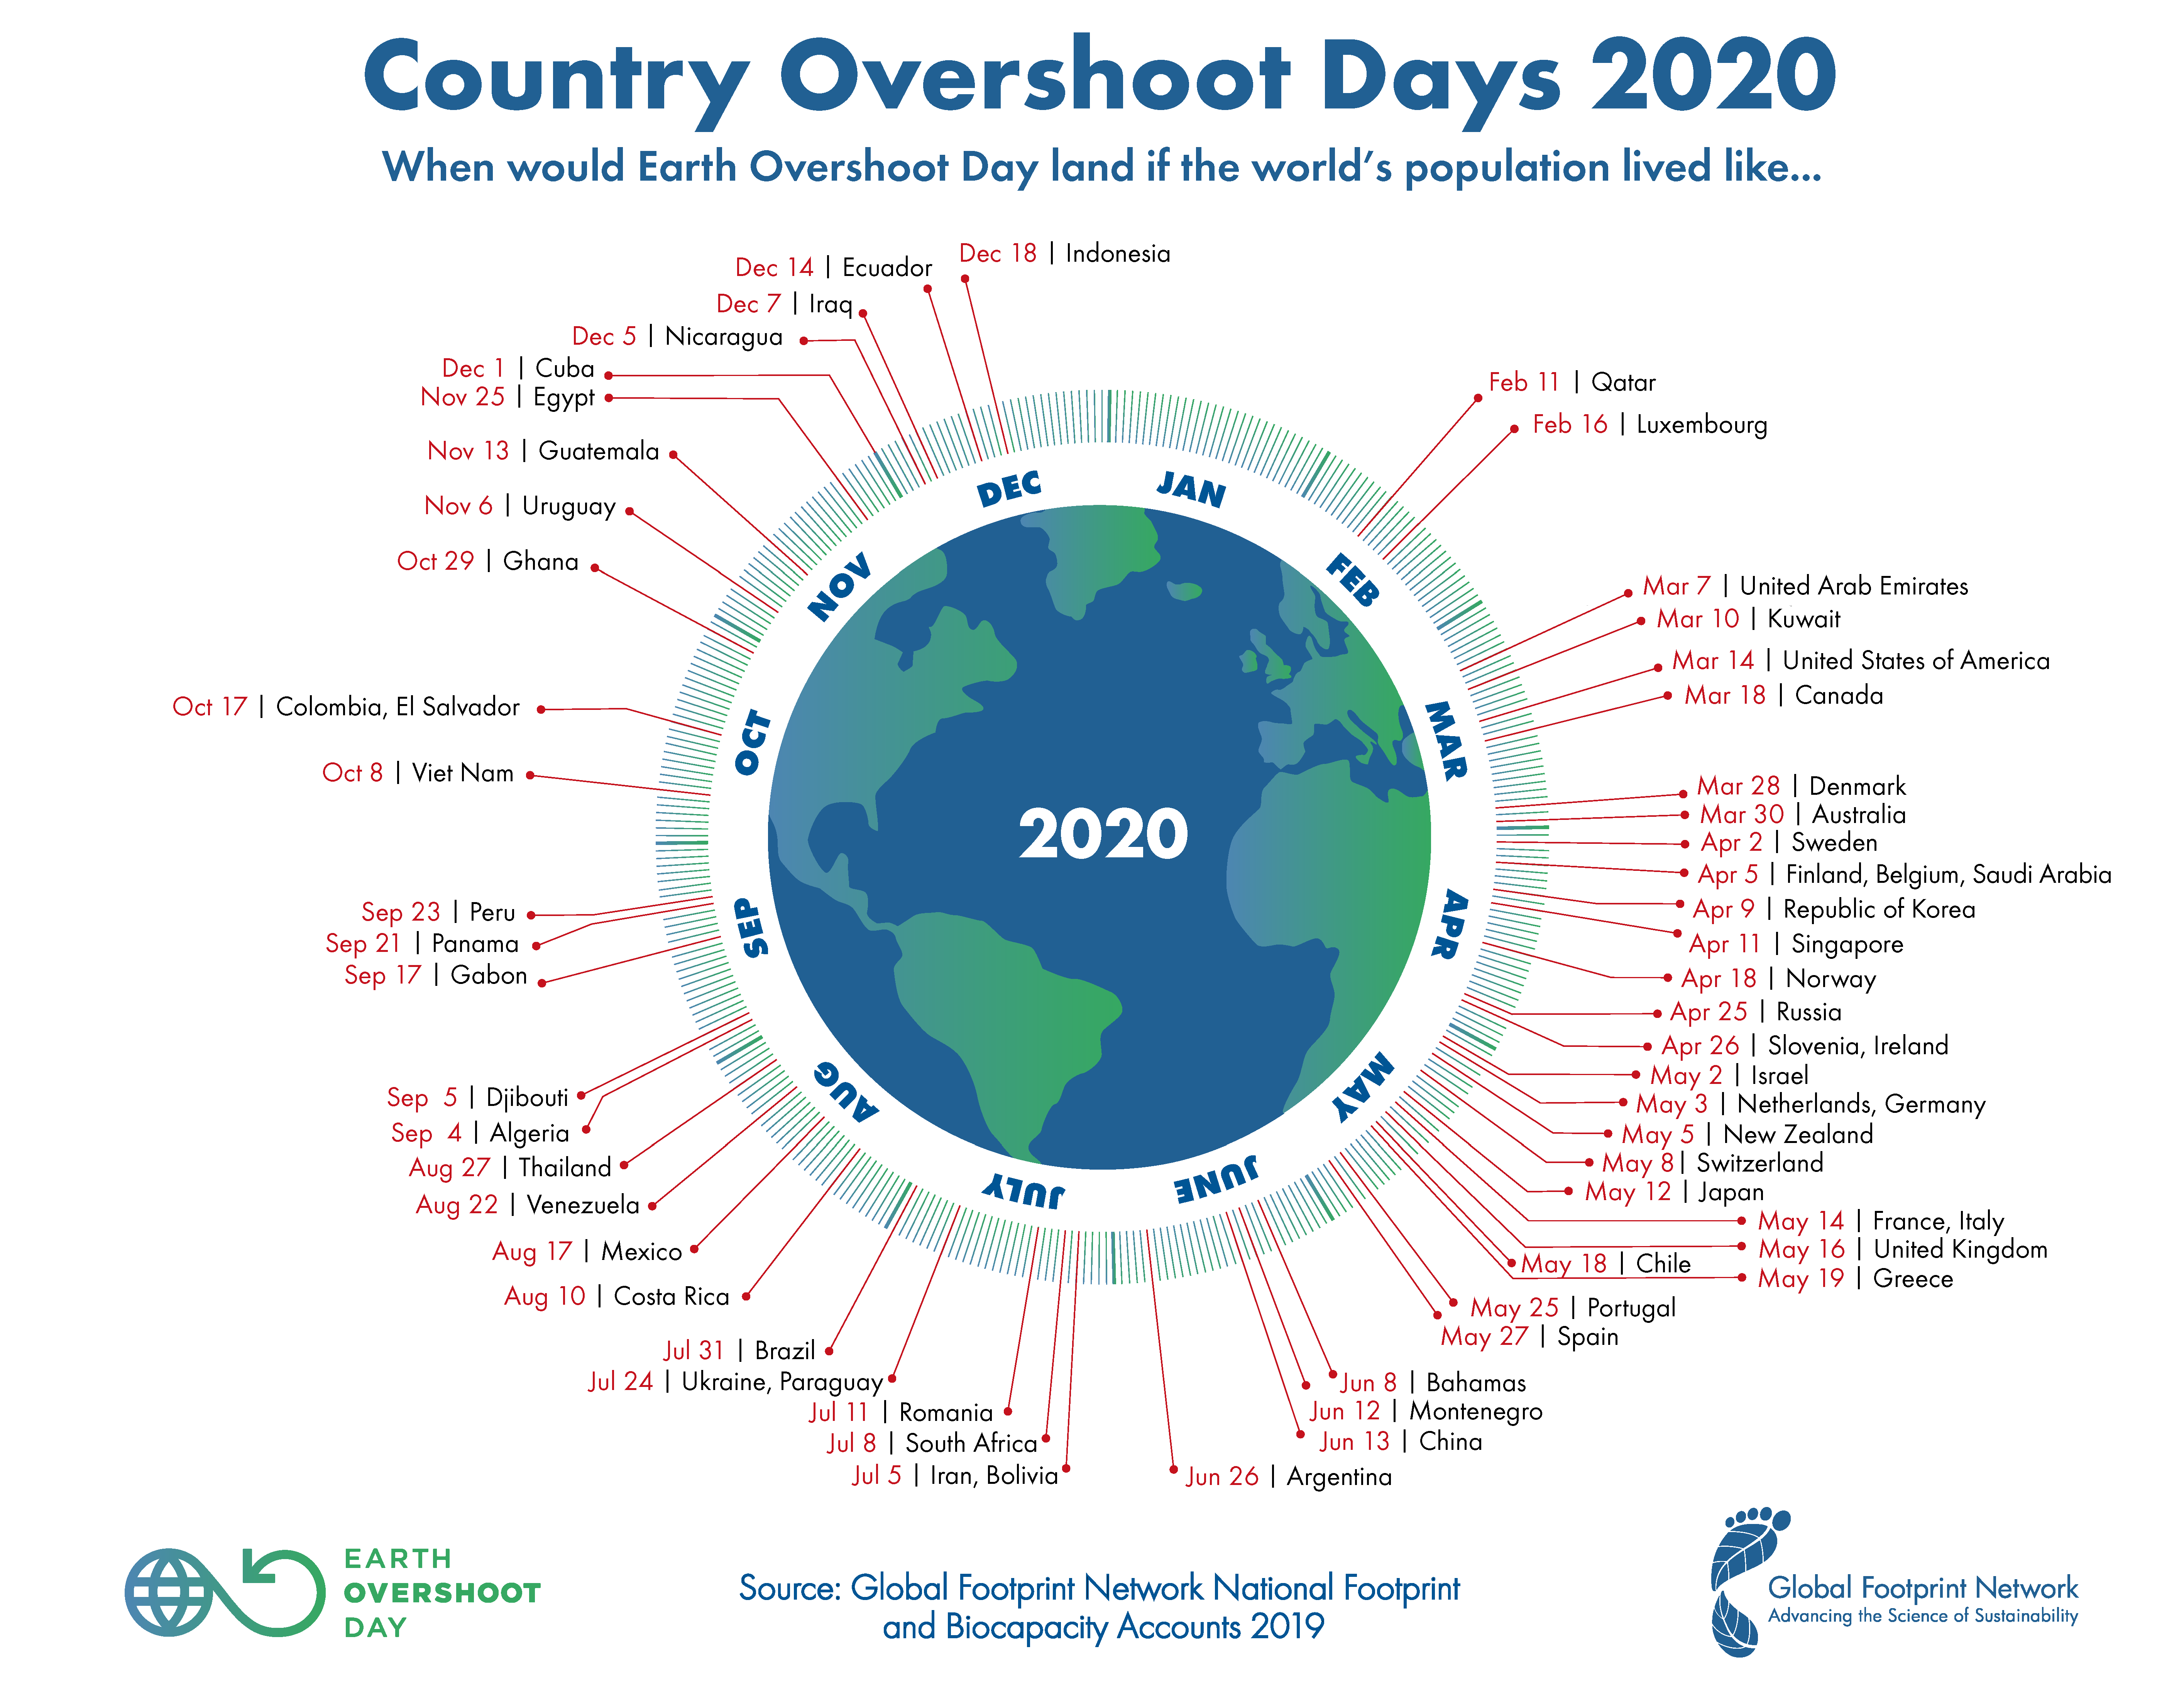 Country Overshoot Days 2020 - Earth Overshoot Day